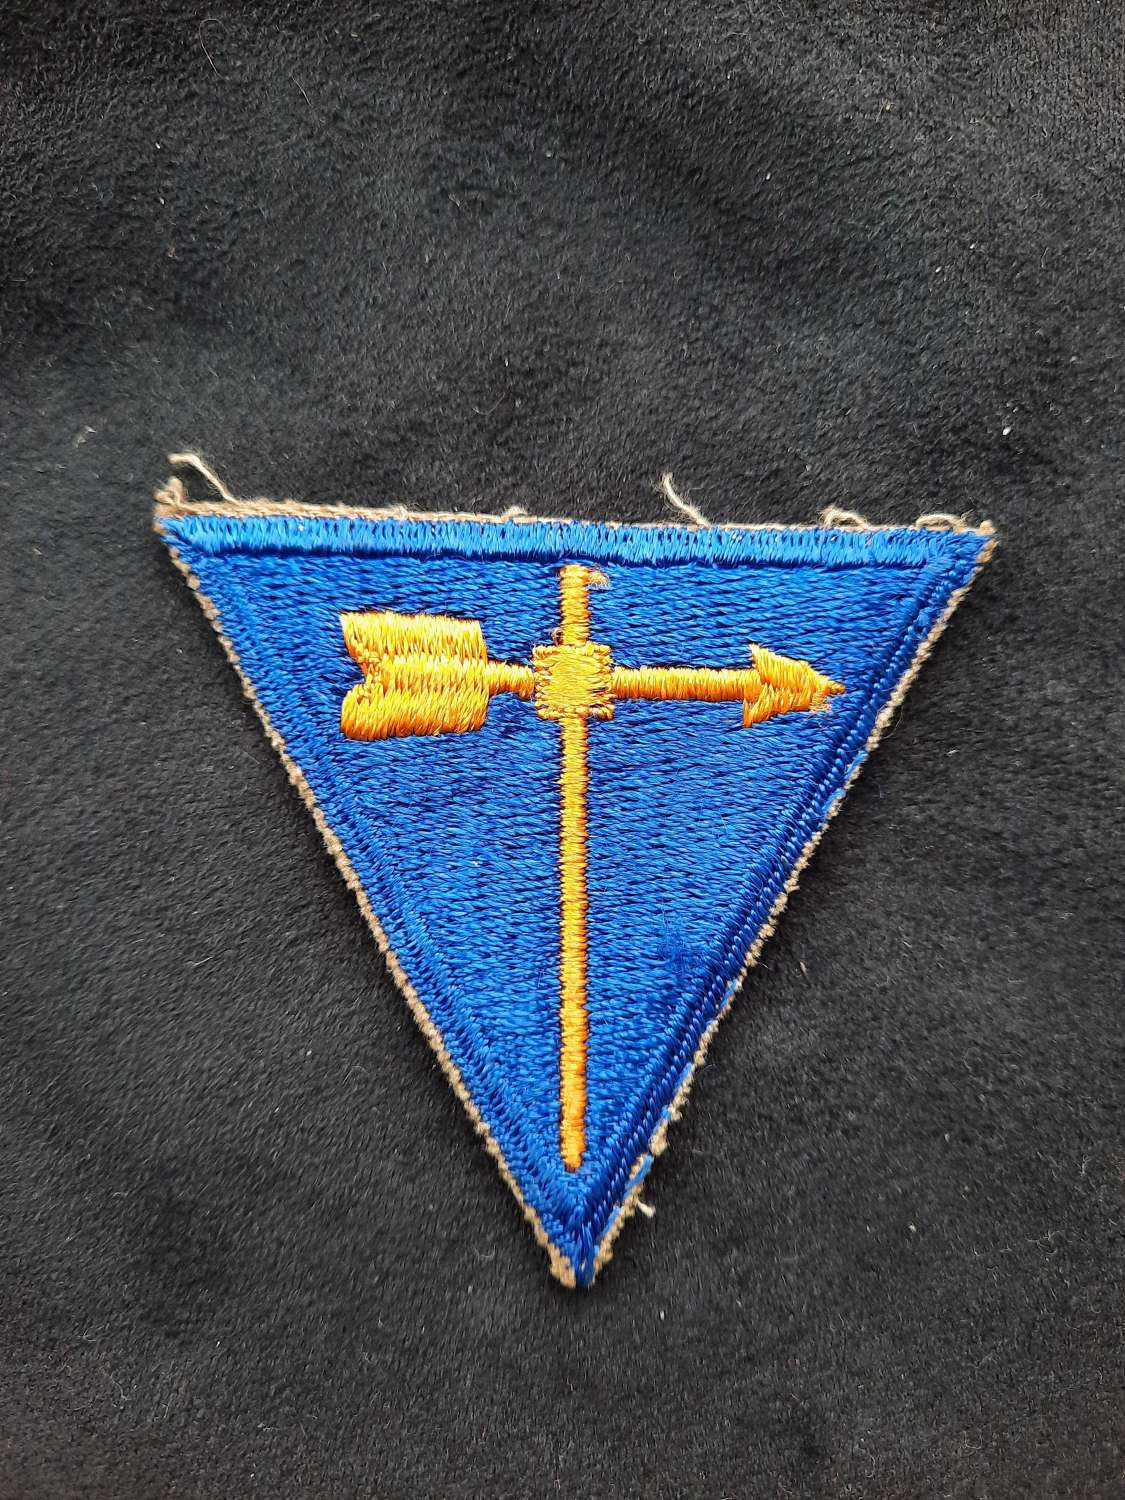 USAAF Weather Specialist Patch